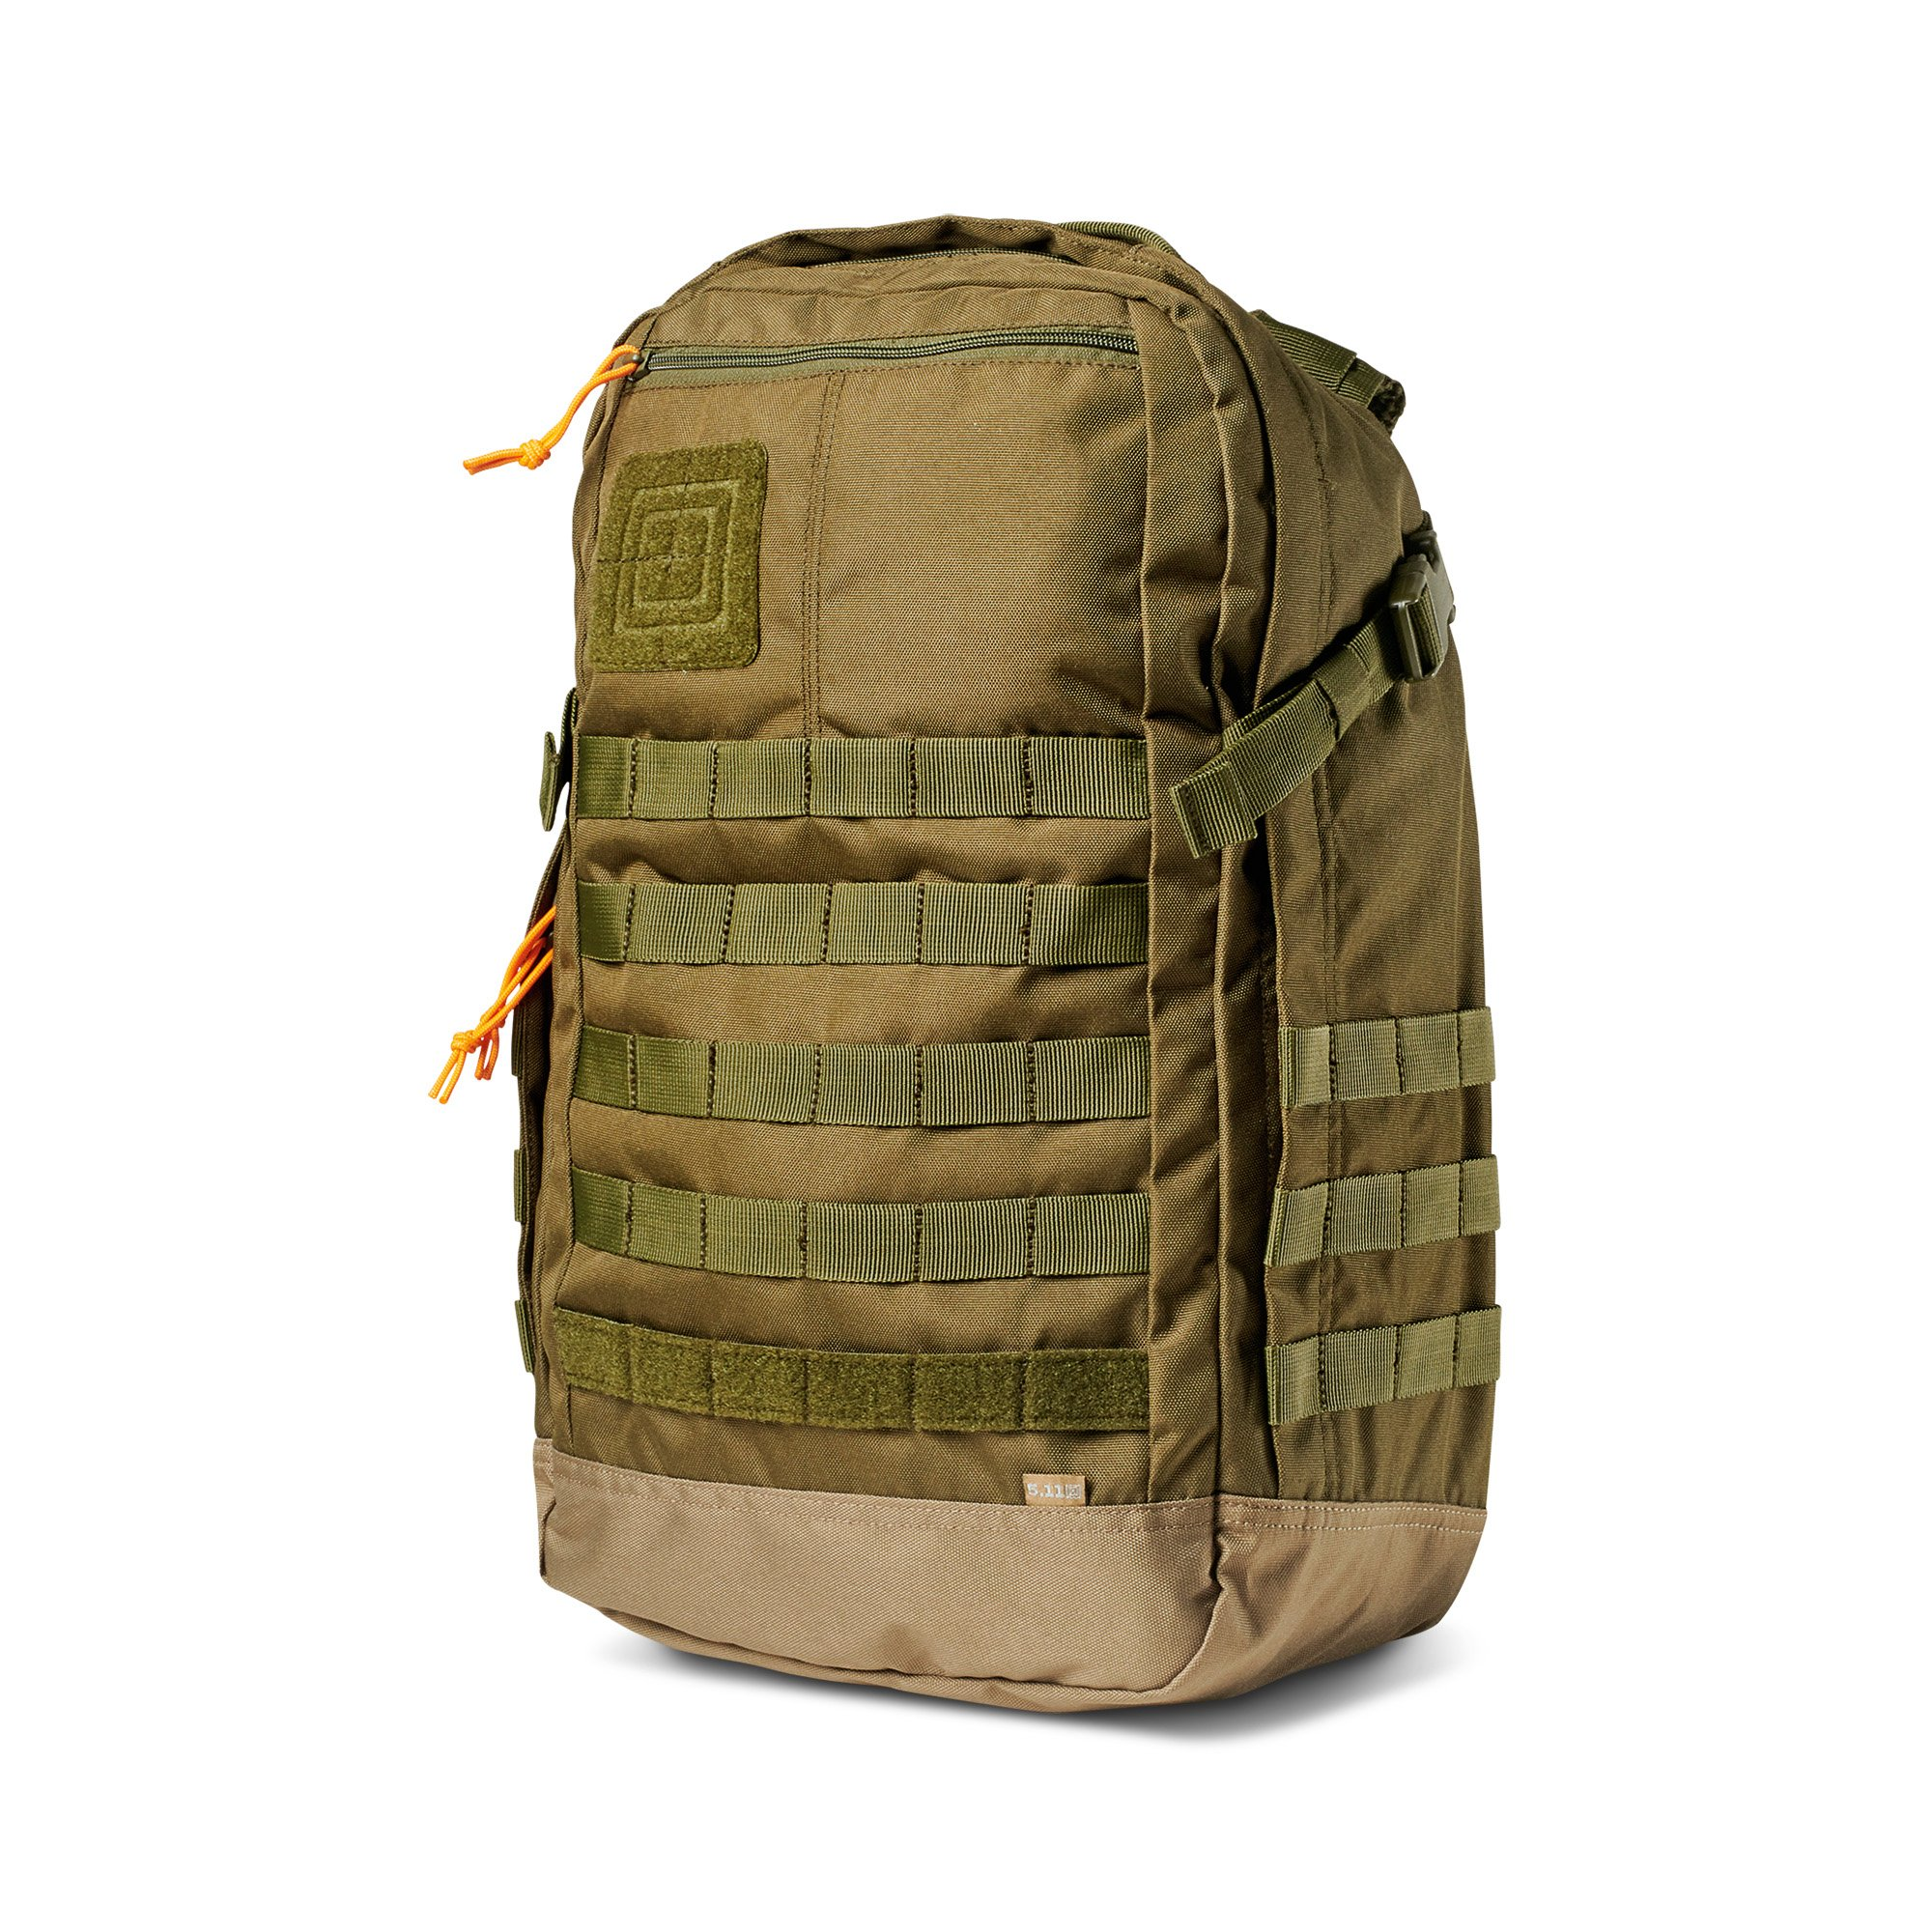 5.11 Rapid Origin Tactical Backpack with Laptop Sleeve, Hydration Pocket, MOLLE, Style 56355, TAC OD by 5.11